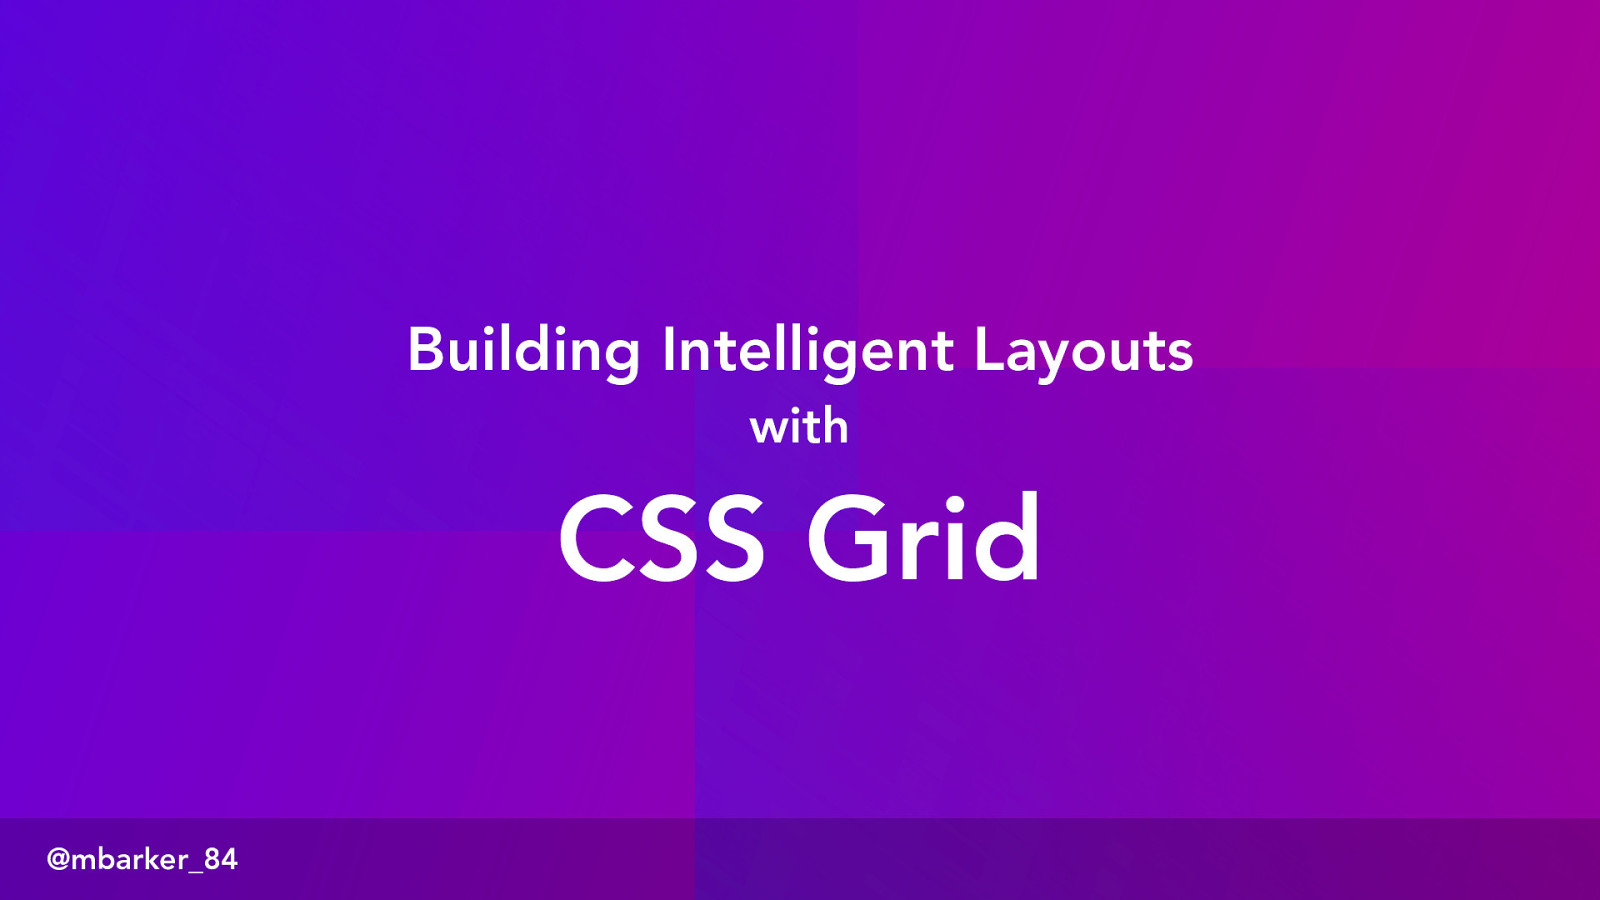 Building Intelligent Layouts with CSS Grid